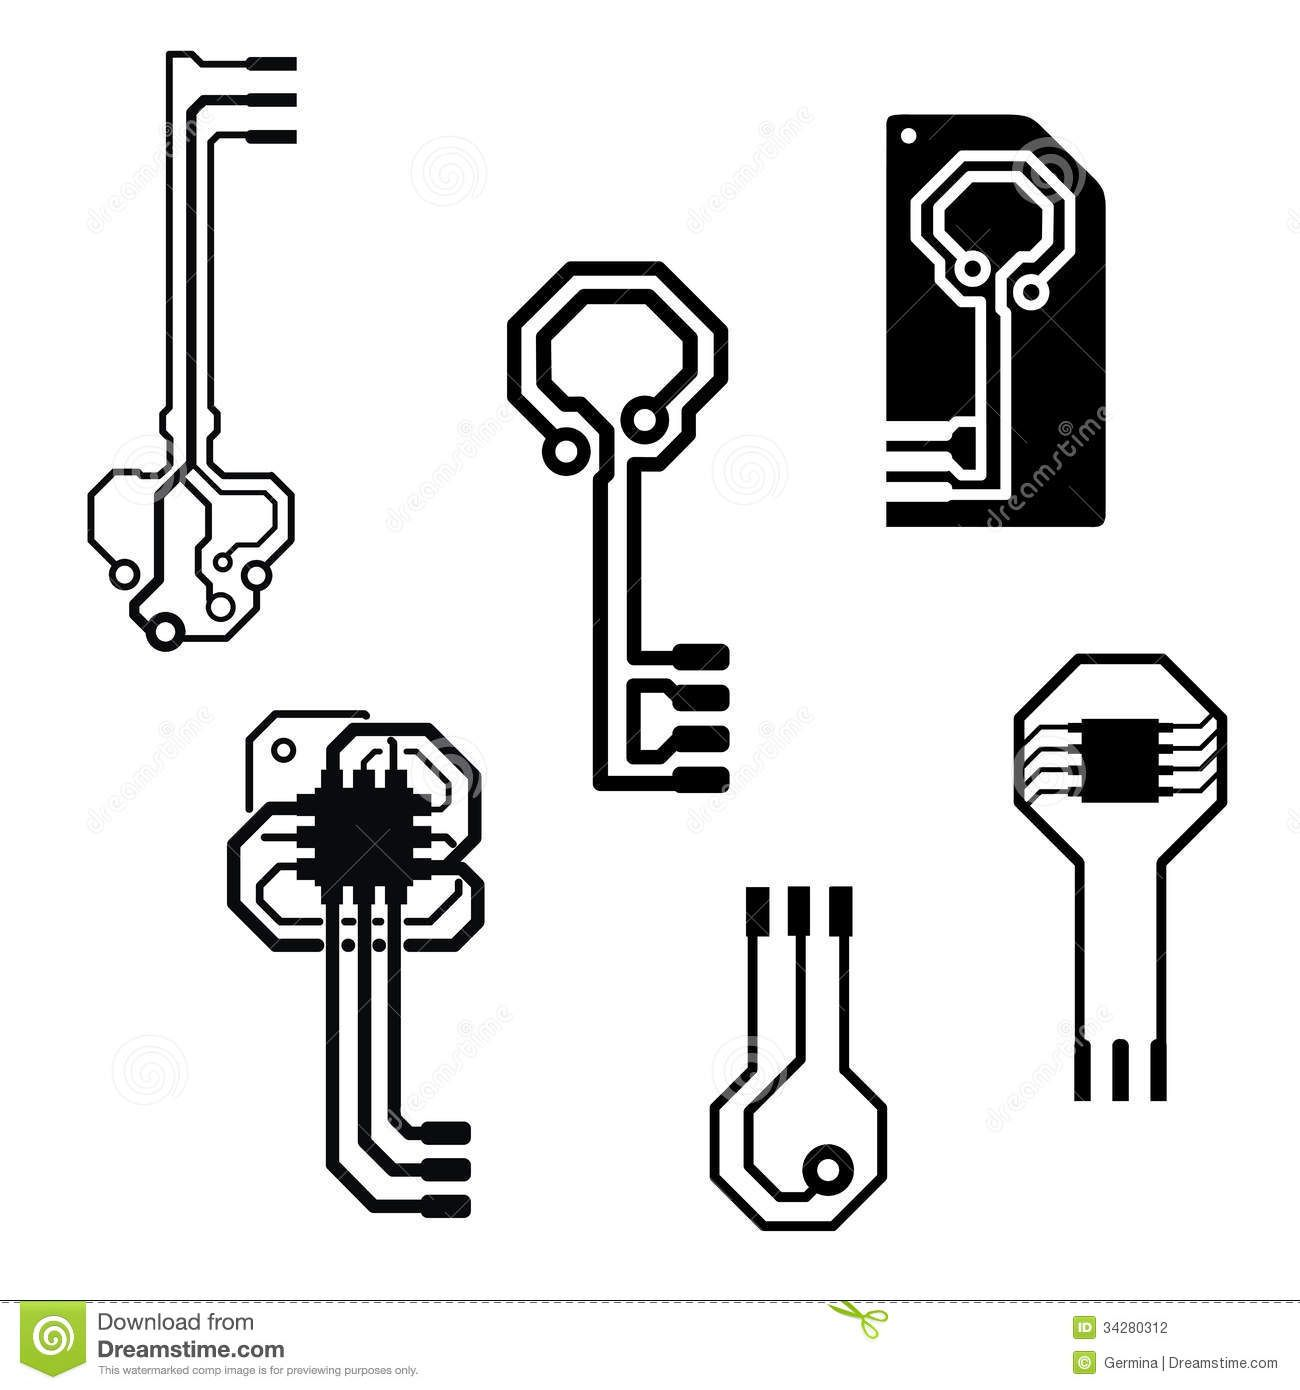 photo about vector circuit board keys for data security icons